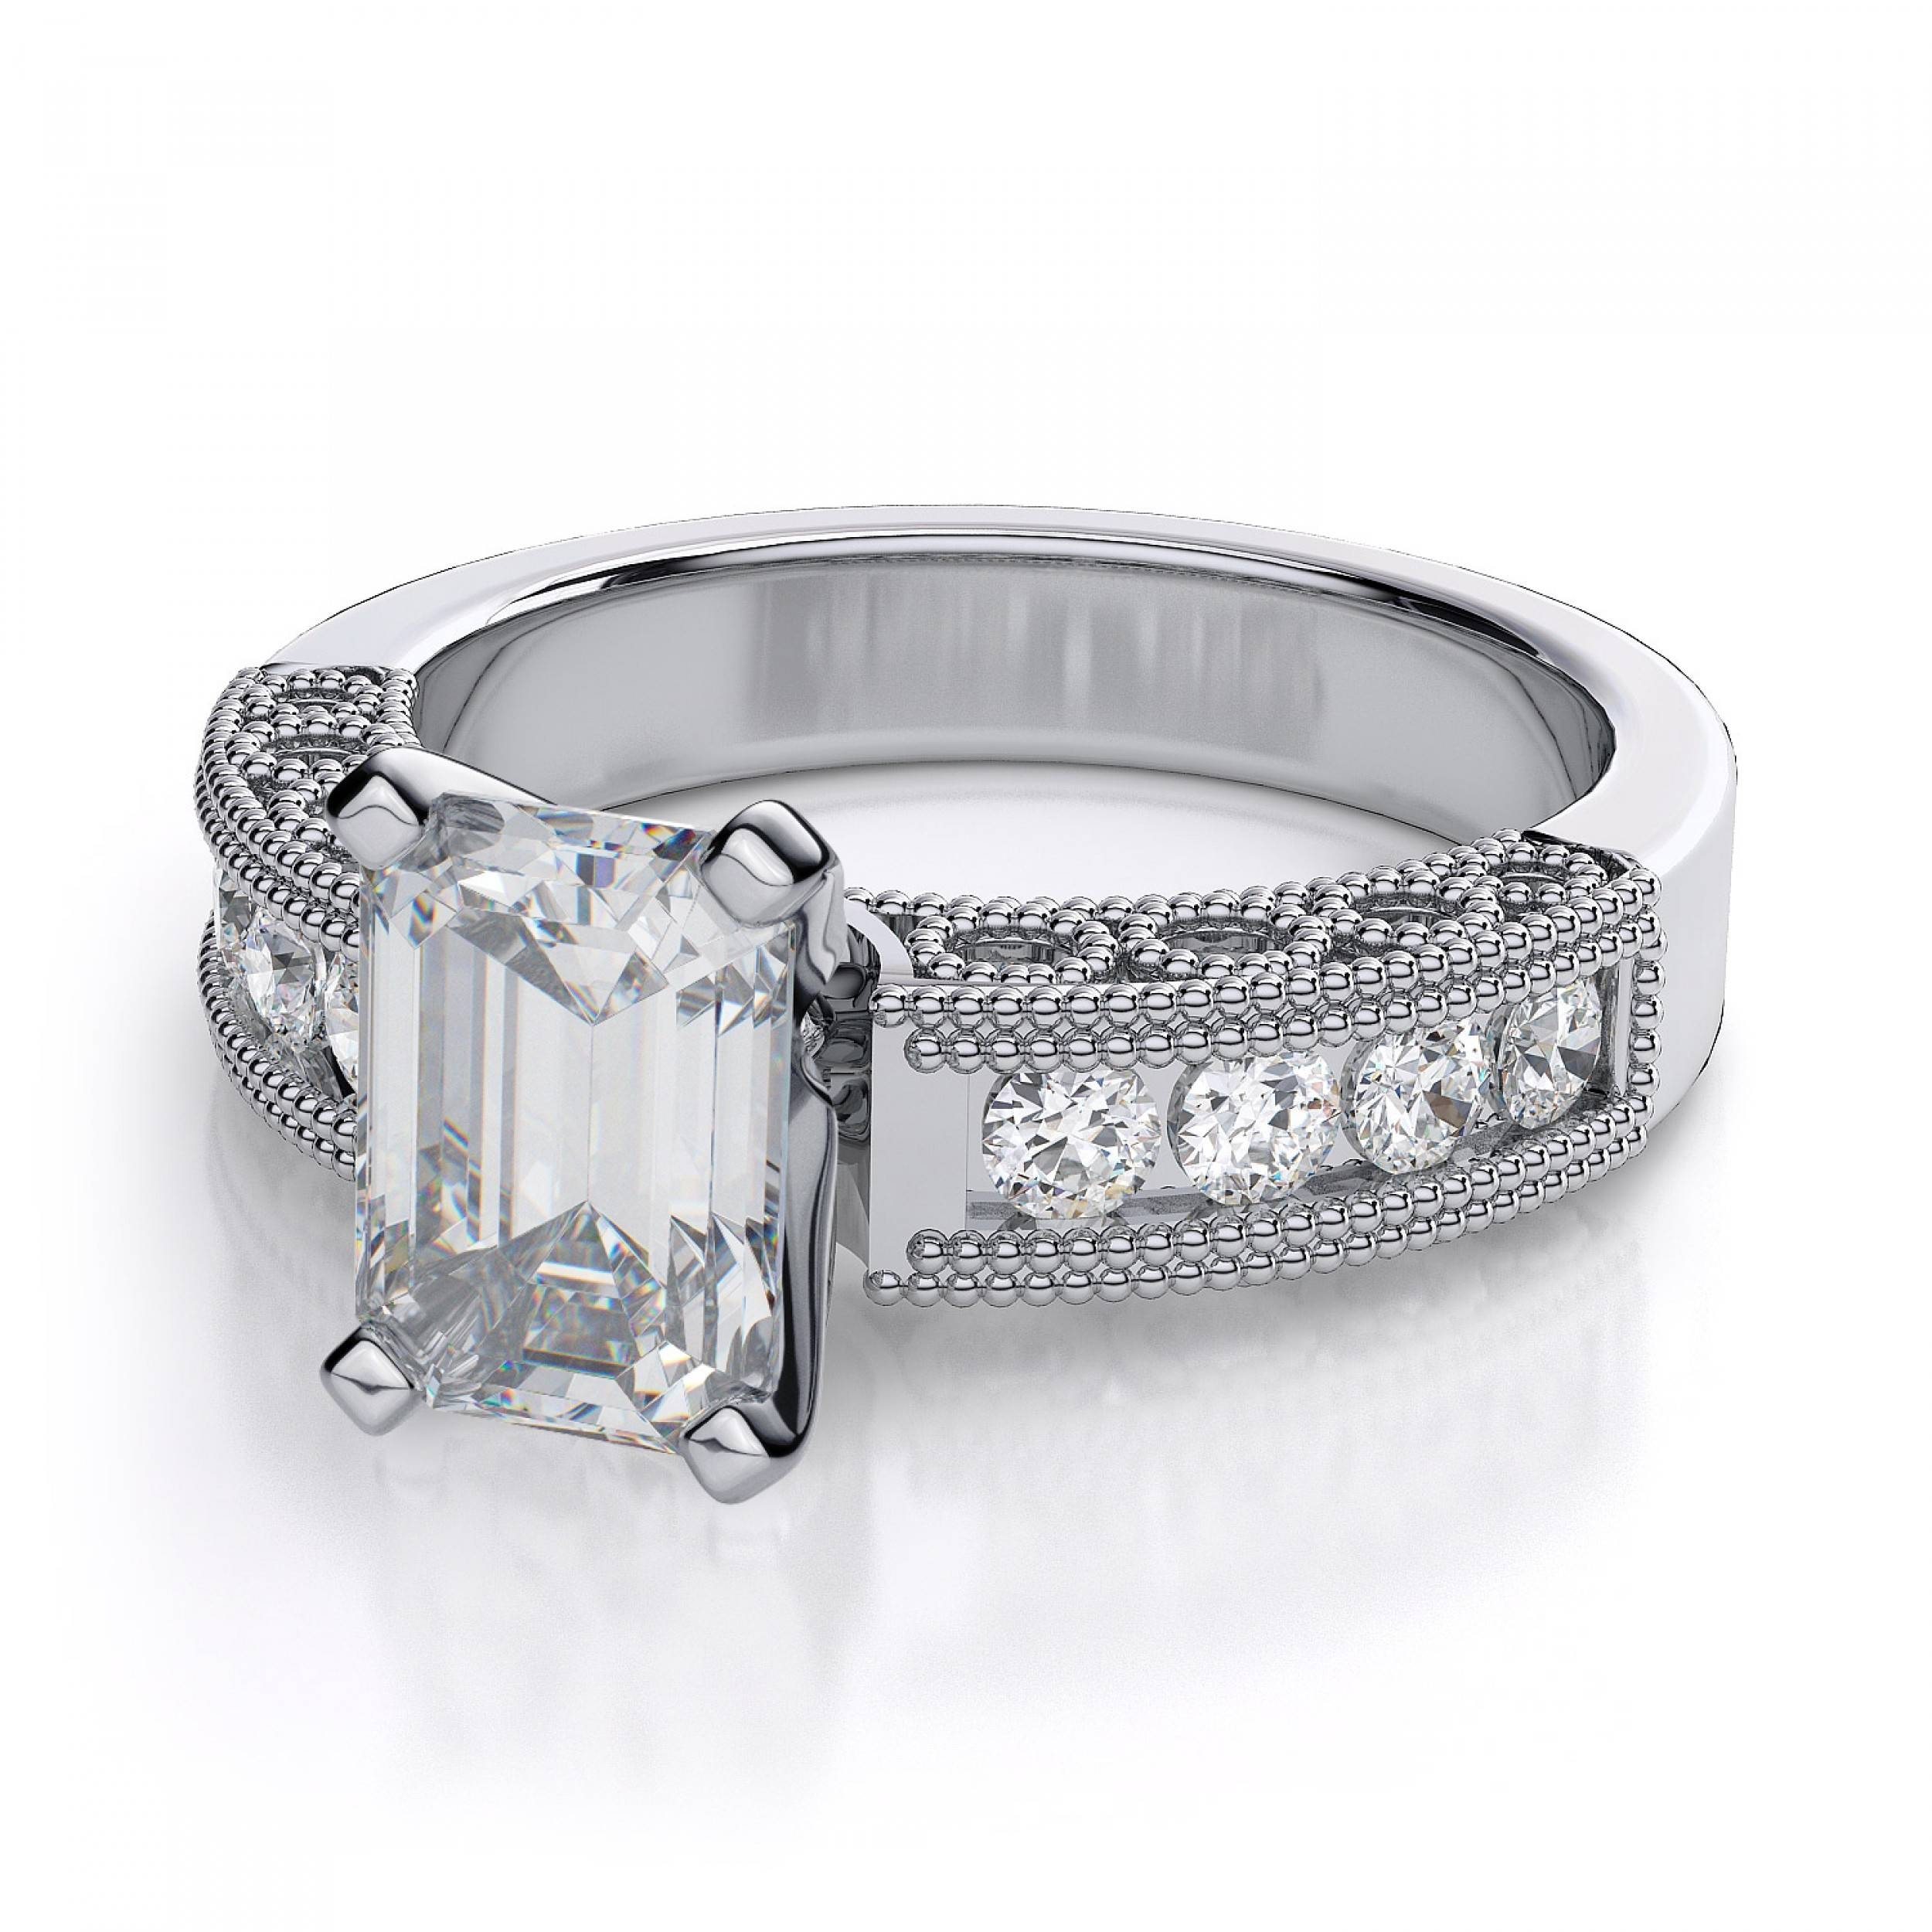 40ctw Vintage Emerald Cut Sidestones Diamond Engagement Ring Inside Engagement Rings 18k White Gold (View 14 of 15)